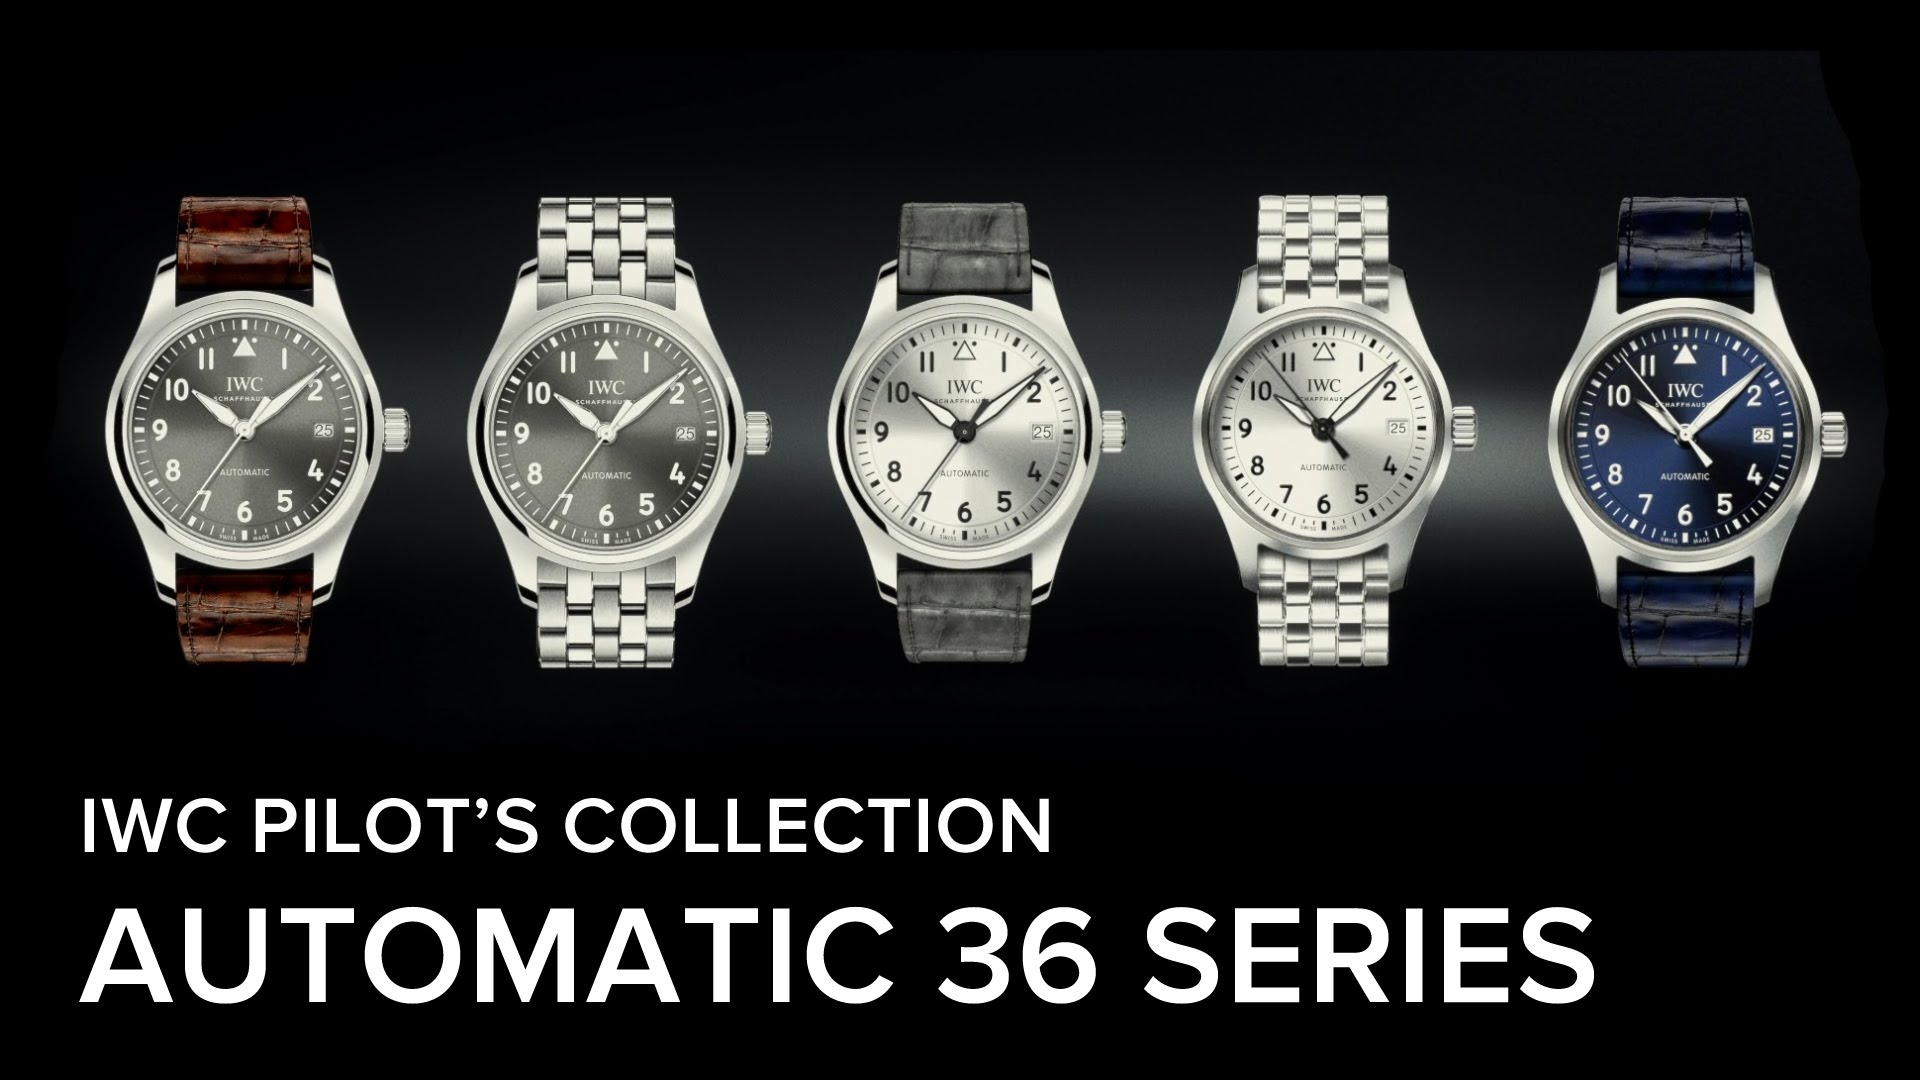 Review IWC Watches Collection Replica For Valentine's Day From https://www.iwcwatchreplica.co/!